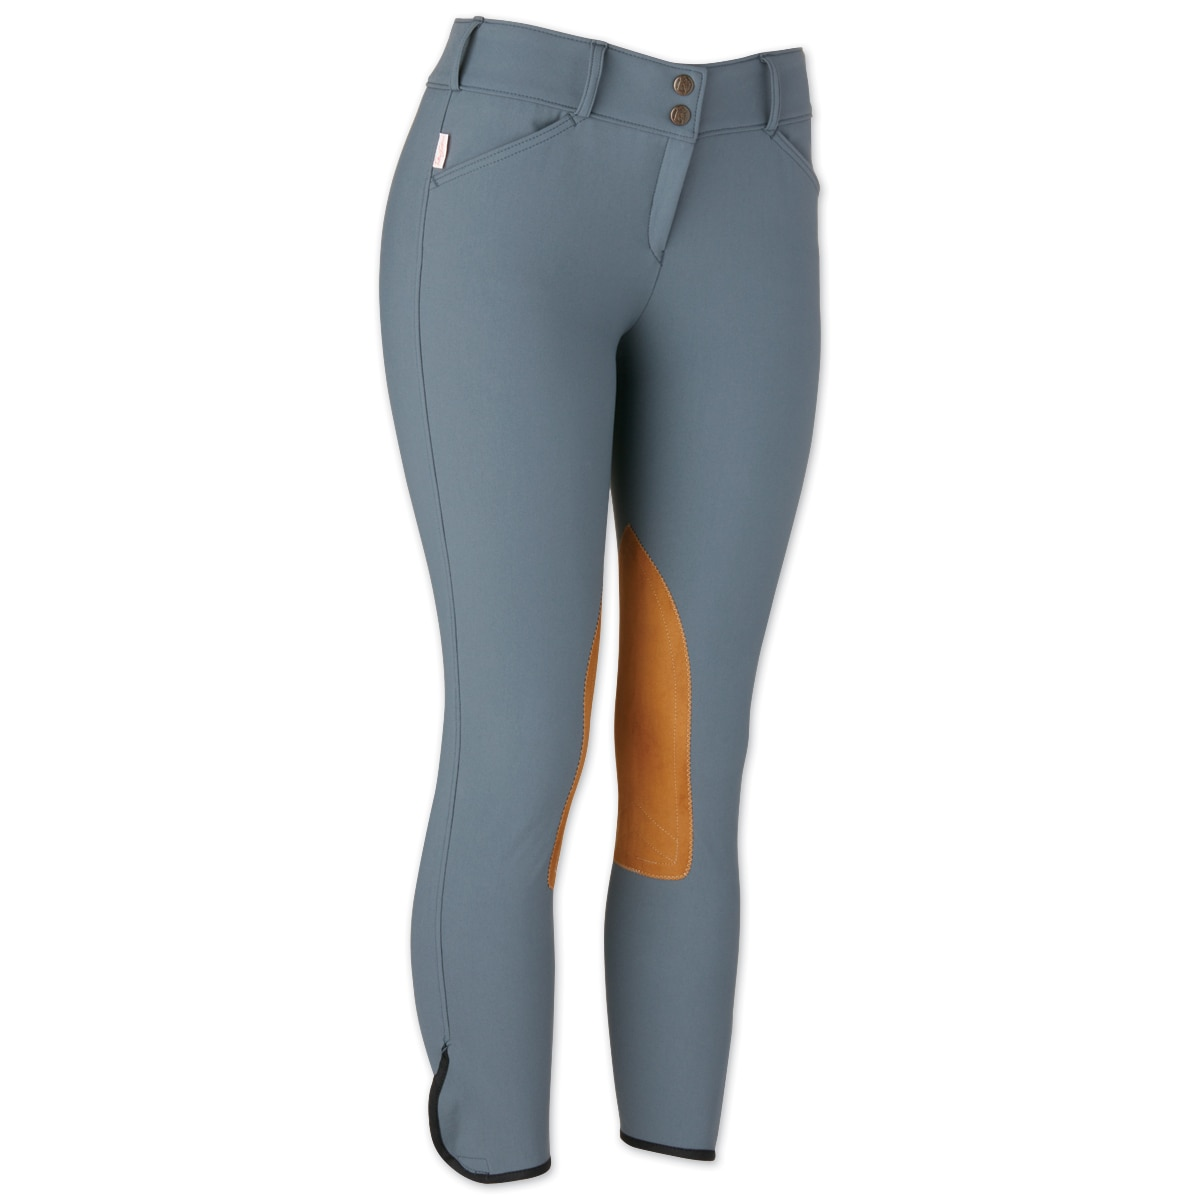 The tailored sportsman contrast patch trophy hunter low rise